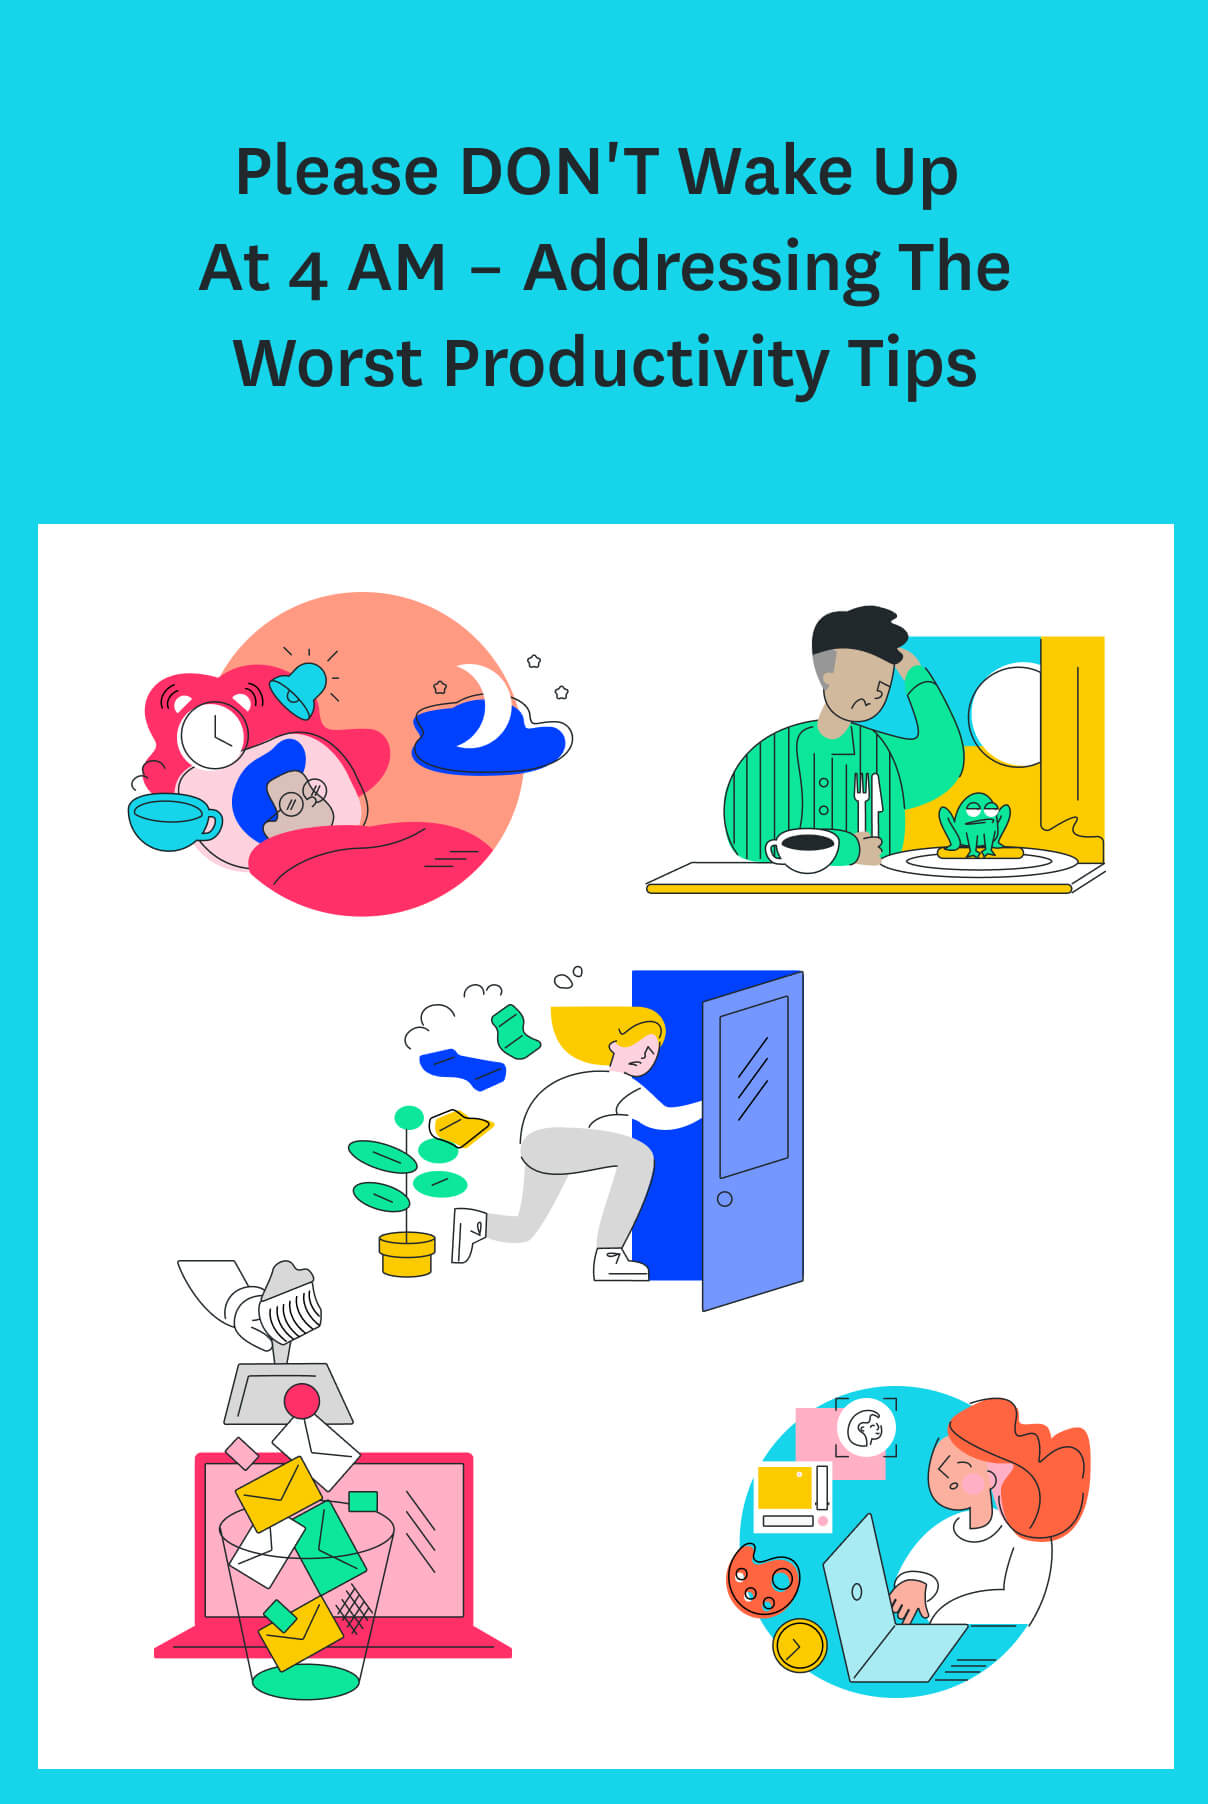 You've probably heard the advice that if you want to have a productive day, you need to wake up earlier. Well, we're here to tell you that's wrong & bust a few other productivity myths. #productivitytips